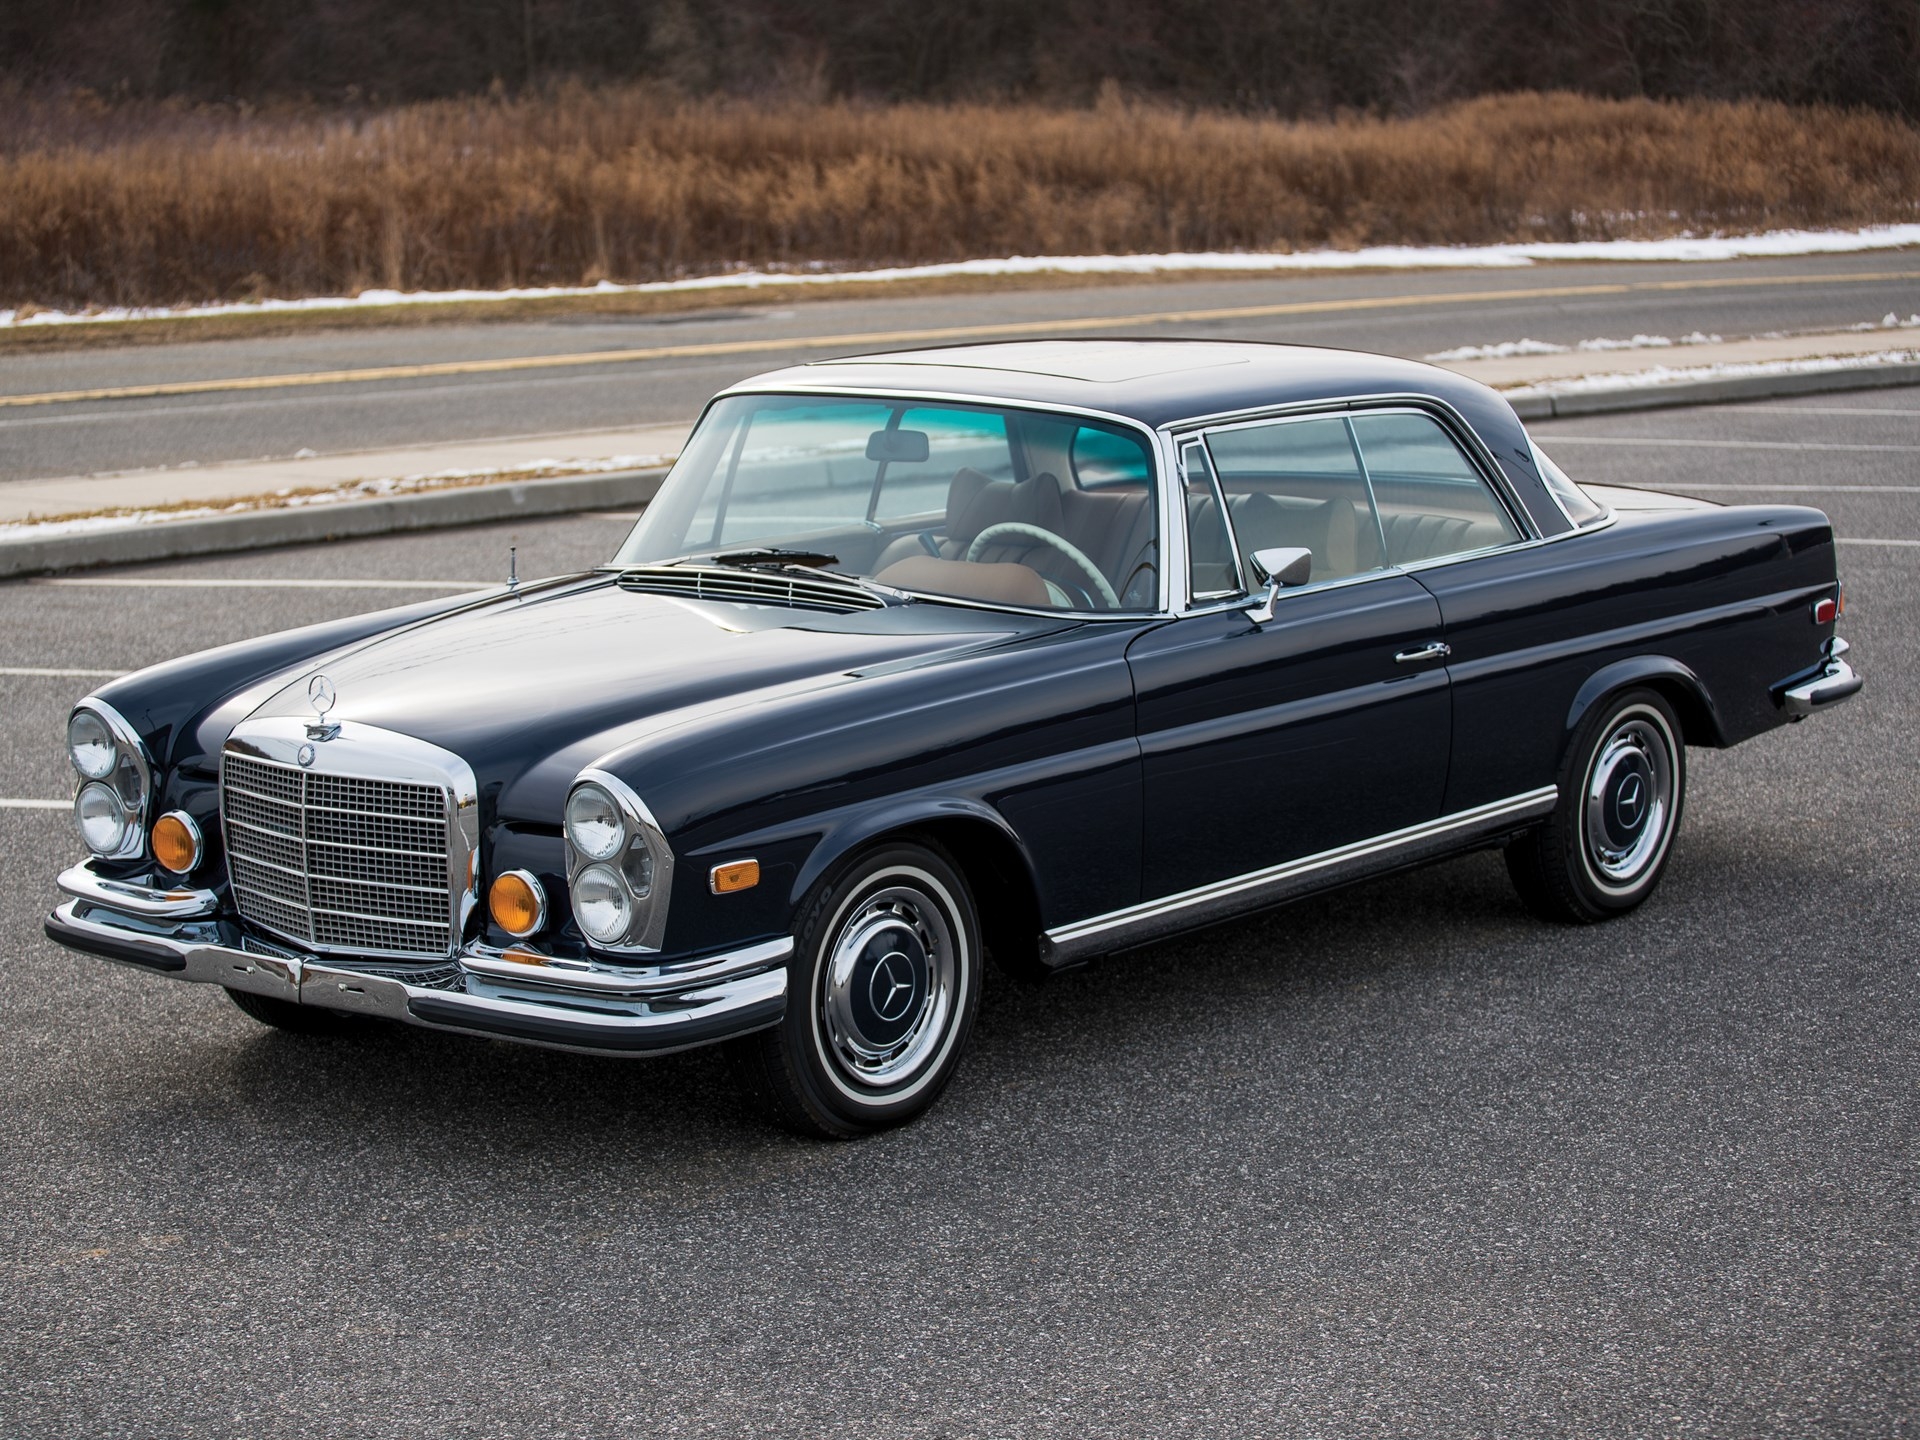 rm sotheby 39 s 1971 mercedes benz 280 se 3 5 39 sunroof. Black Bedroom Furniture Sets. Home Design Ideas